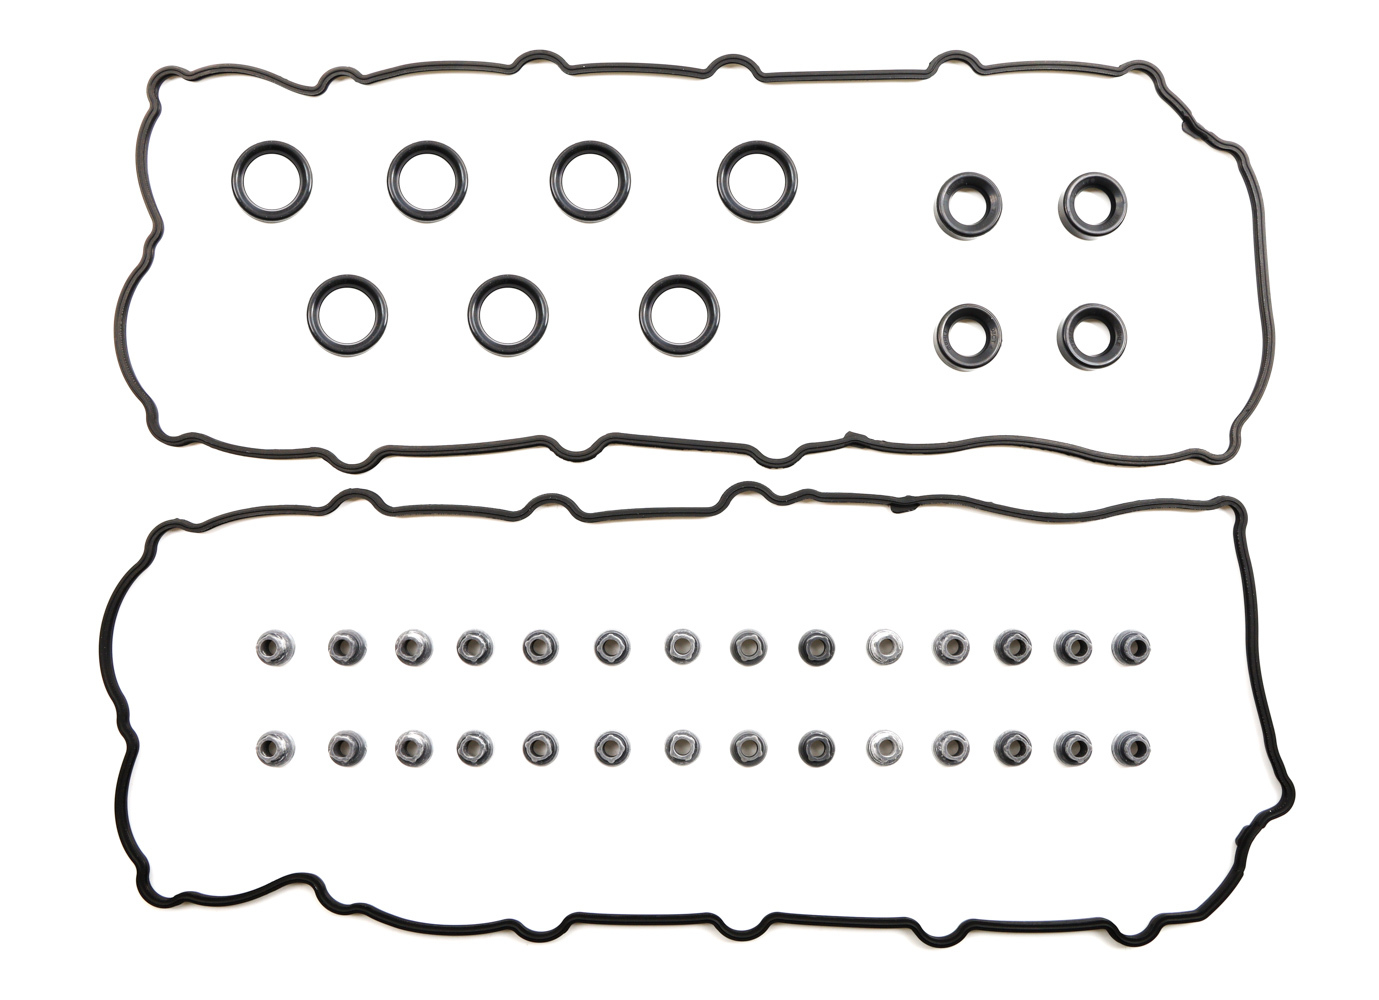 Cometic Gaskets C15576 Valve Cover Gasket, 0.188 in Thick, Rubber, Coyote, Ford Modular, Pair